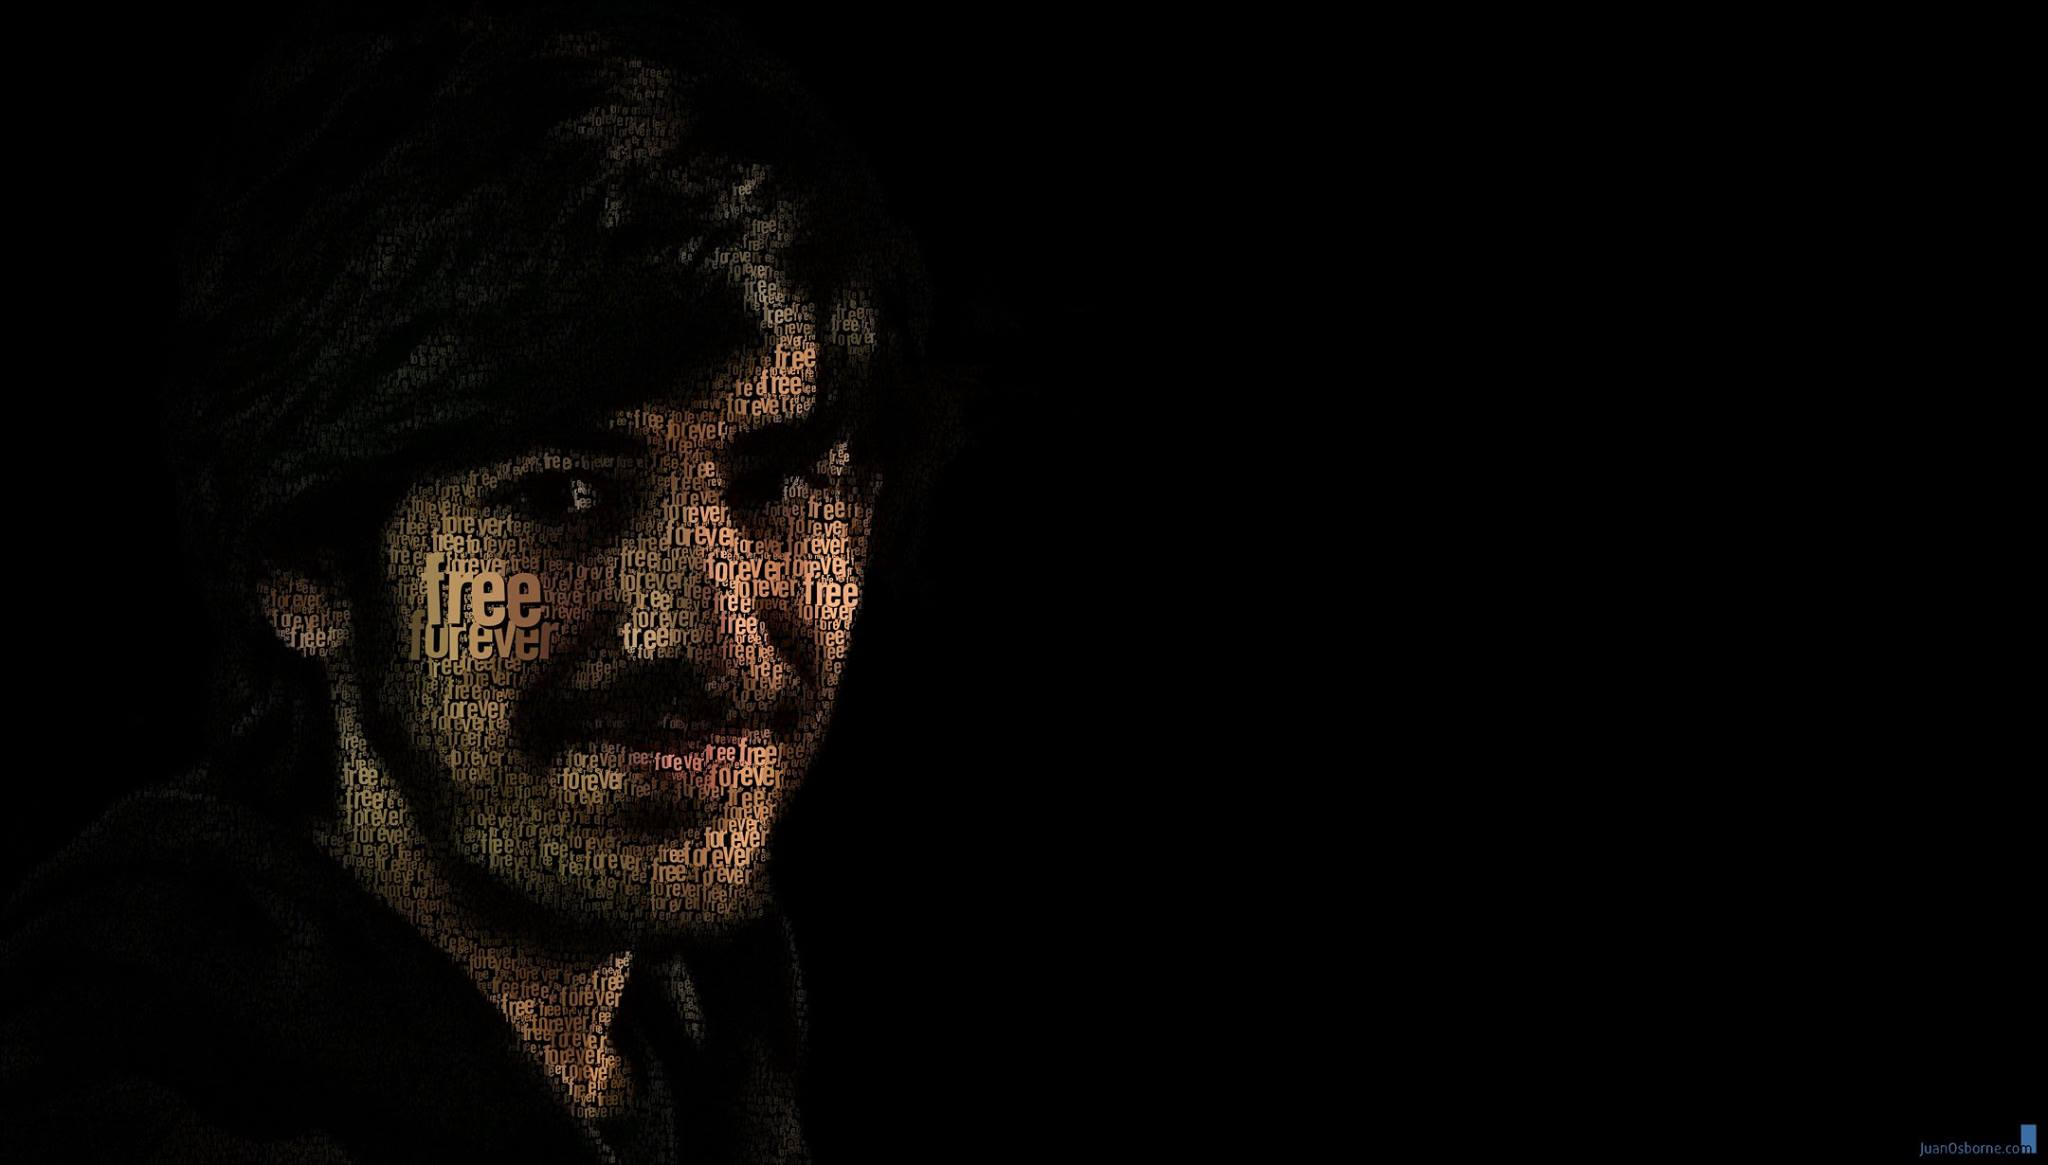 aaronswartz with code(love)